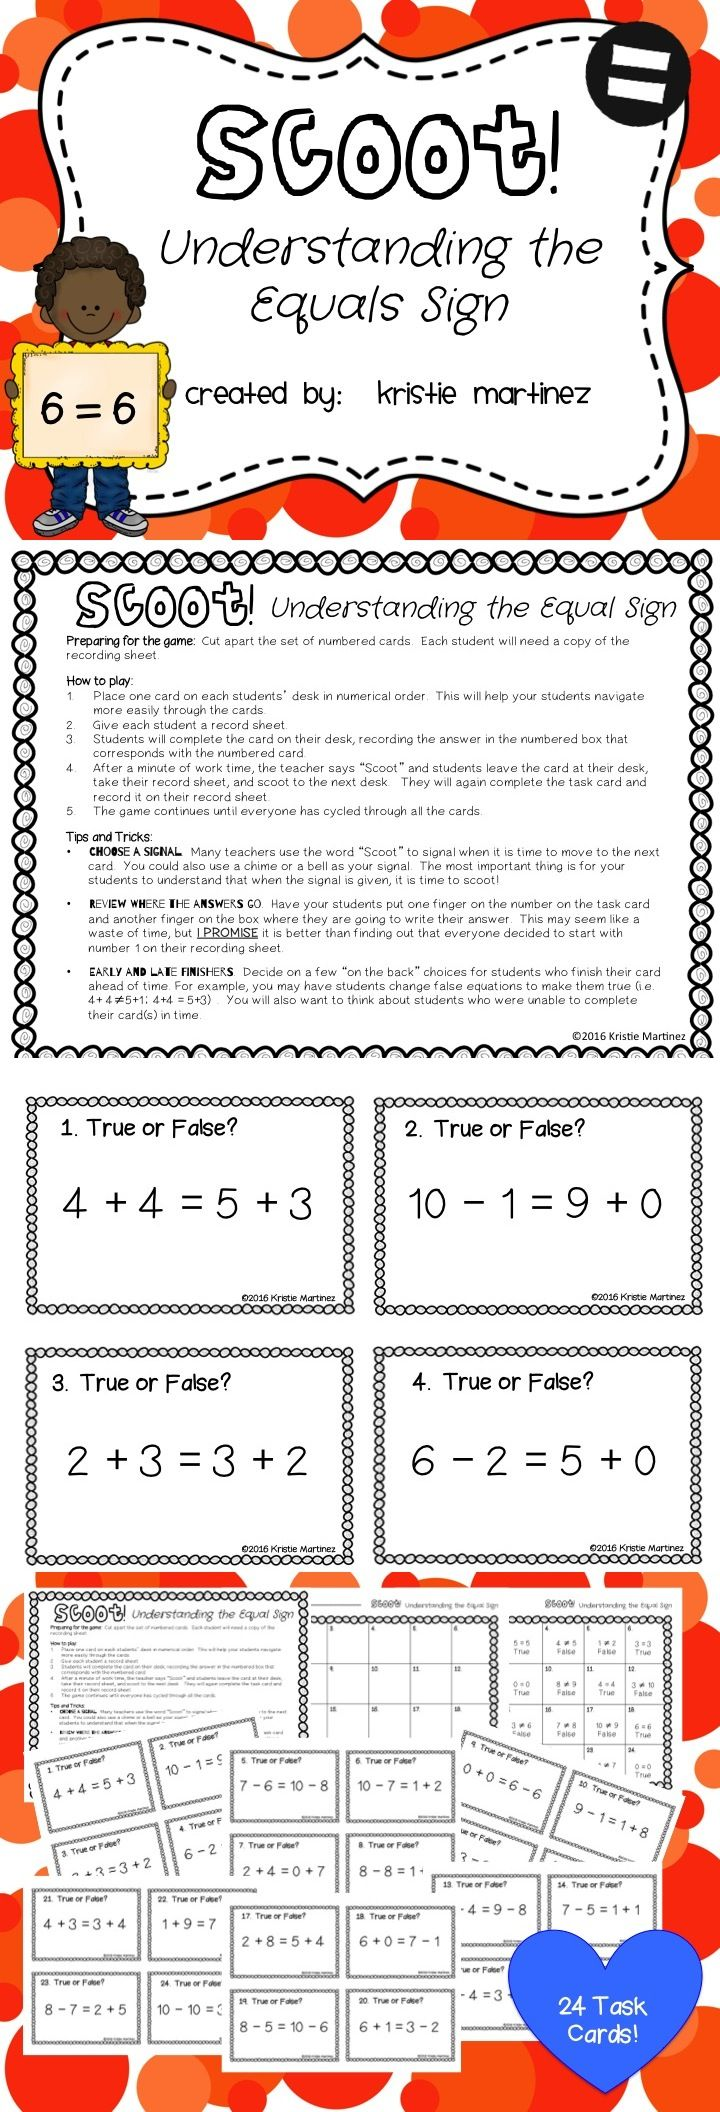 Scoot! Understanding the Equals Sign is a game that will get your entire class up and moving around while reviewing important Common Core Operations and Algebraic Thinking Standards. Scoot! Understanding the Equals Sign will have your students adding and subtracting within 10 to determine if equations are true or false.